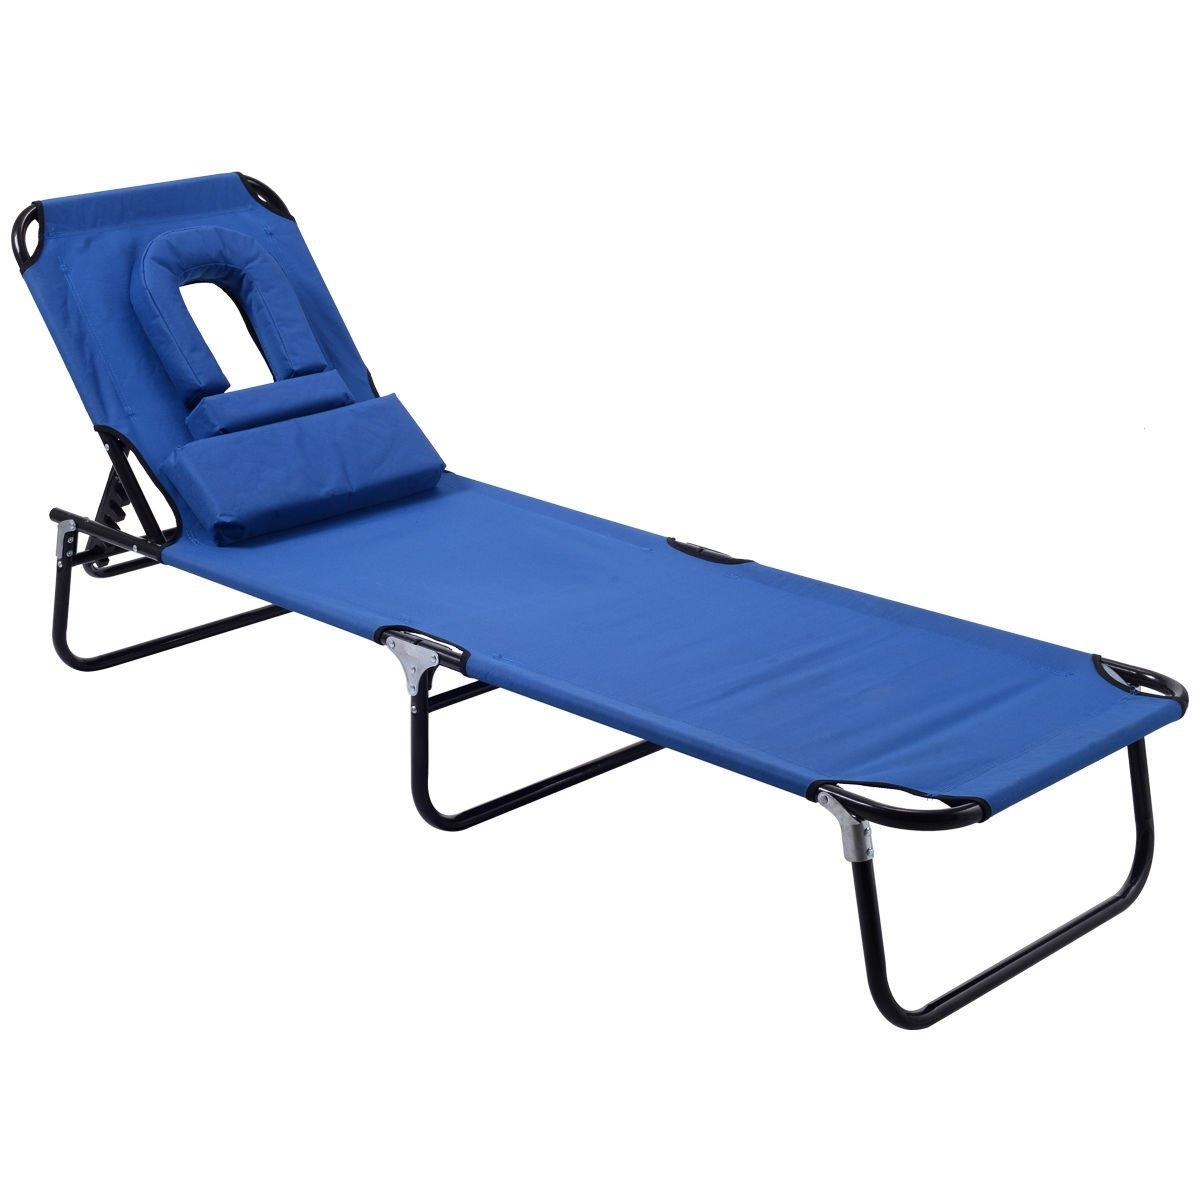 Most Current Amazon: Goplus Folding Chaise Lounge Chair Bed Outdoor Patio Intended For Ostrich Lounge Chaises (View 8 of 15)